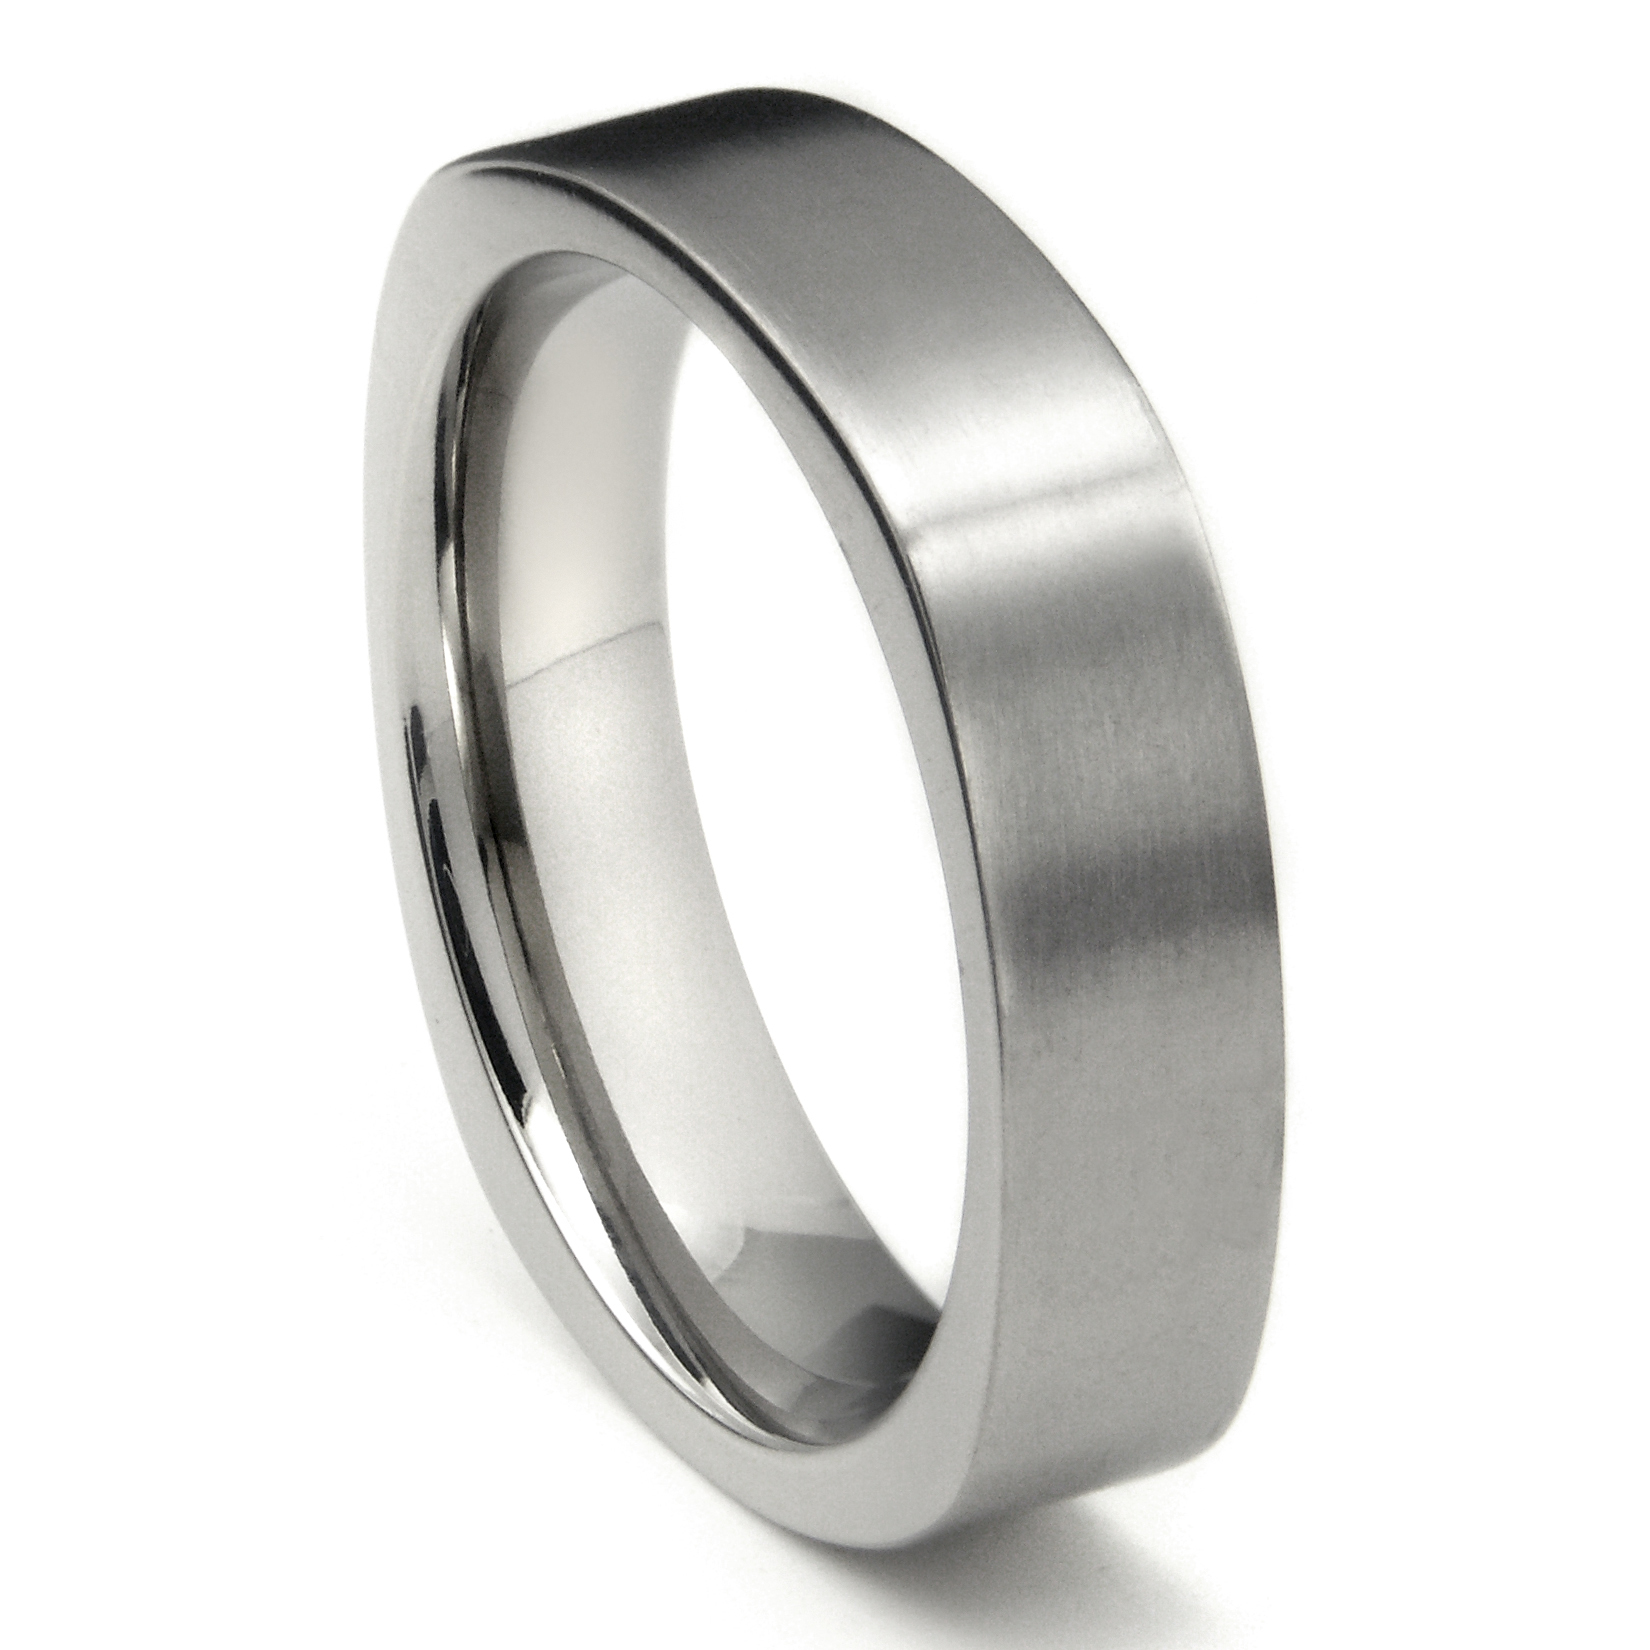 a brushed bands mens wedding s tungsten comfort band platinum men carbide fit archie flat rings products ring